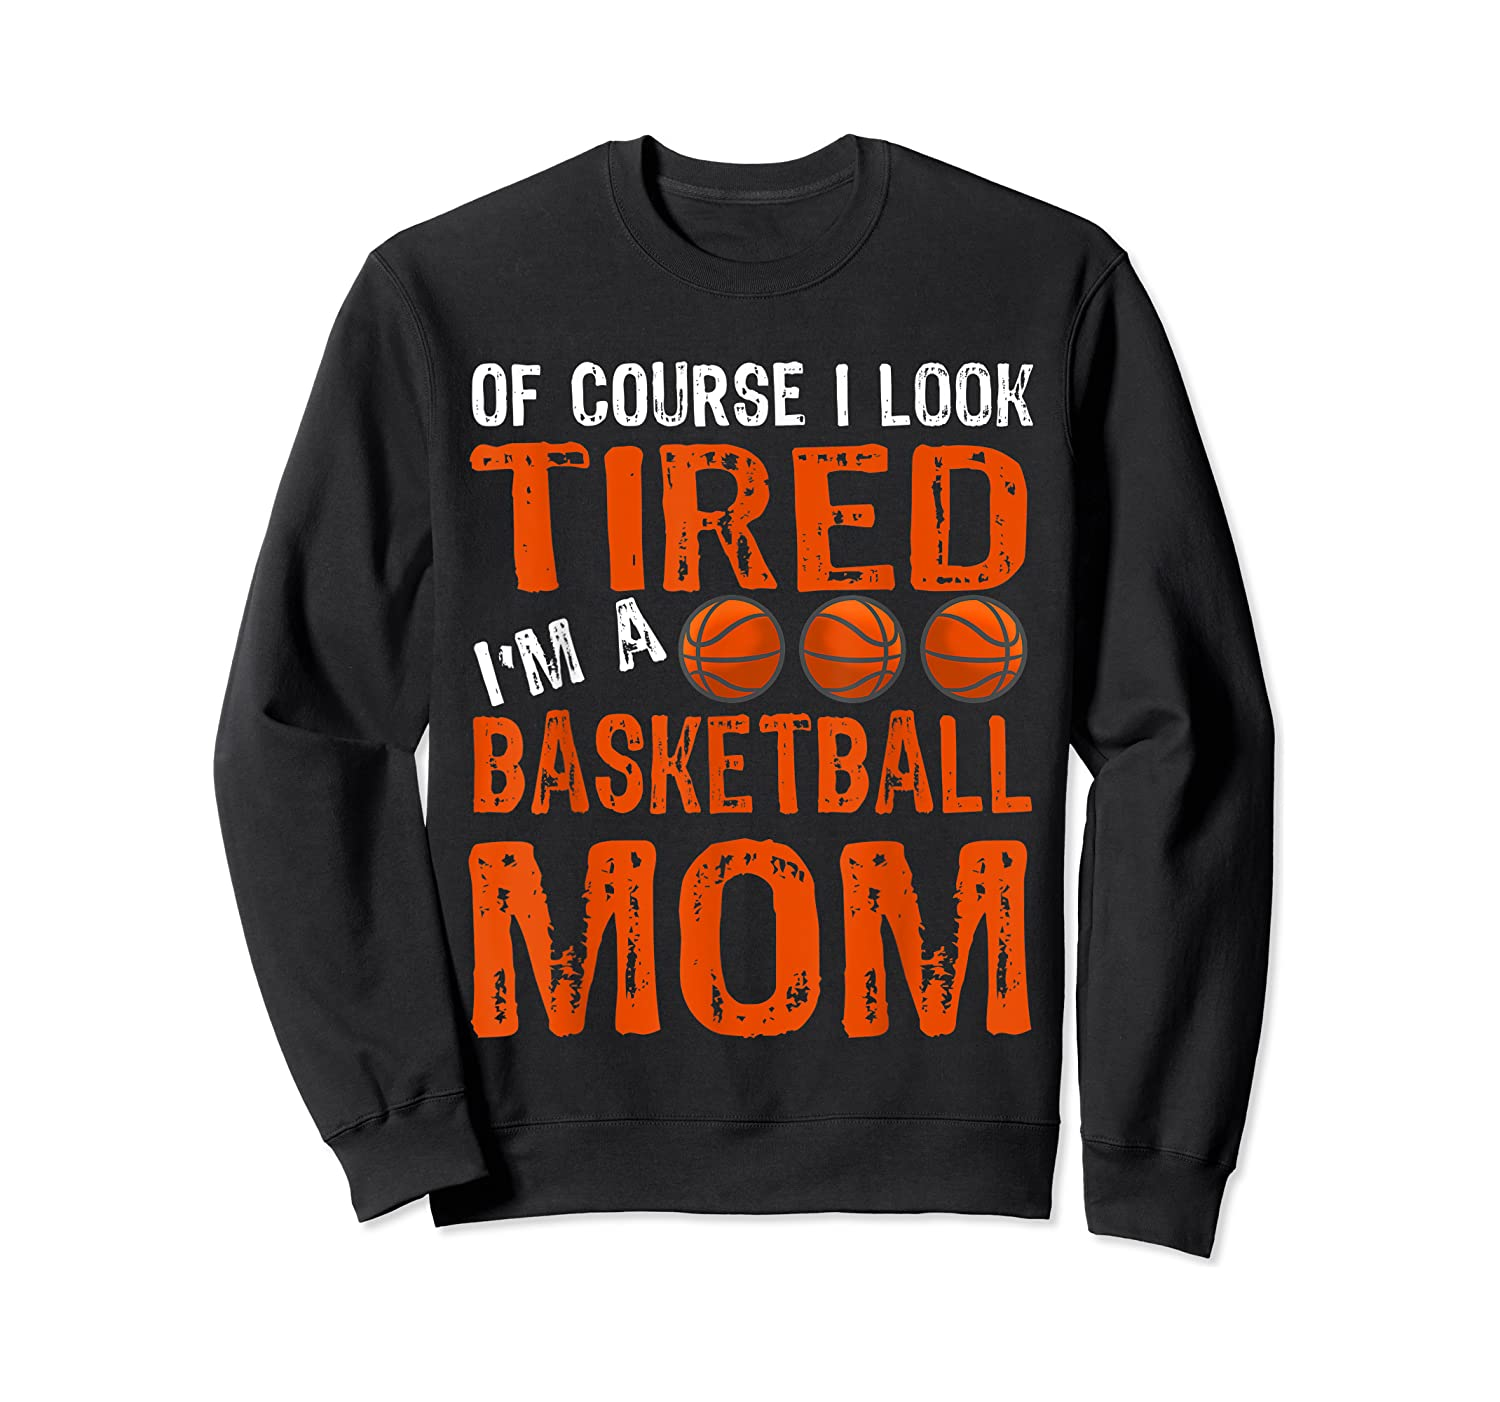 Basketball Player Mom Funny Mother Of Course I'm Tired T-shirt Crewneck Sweater